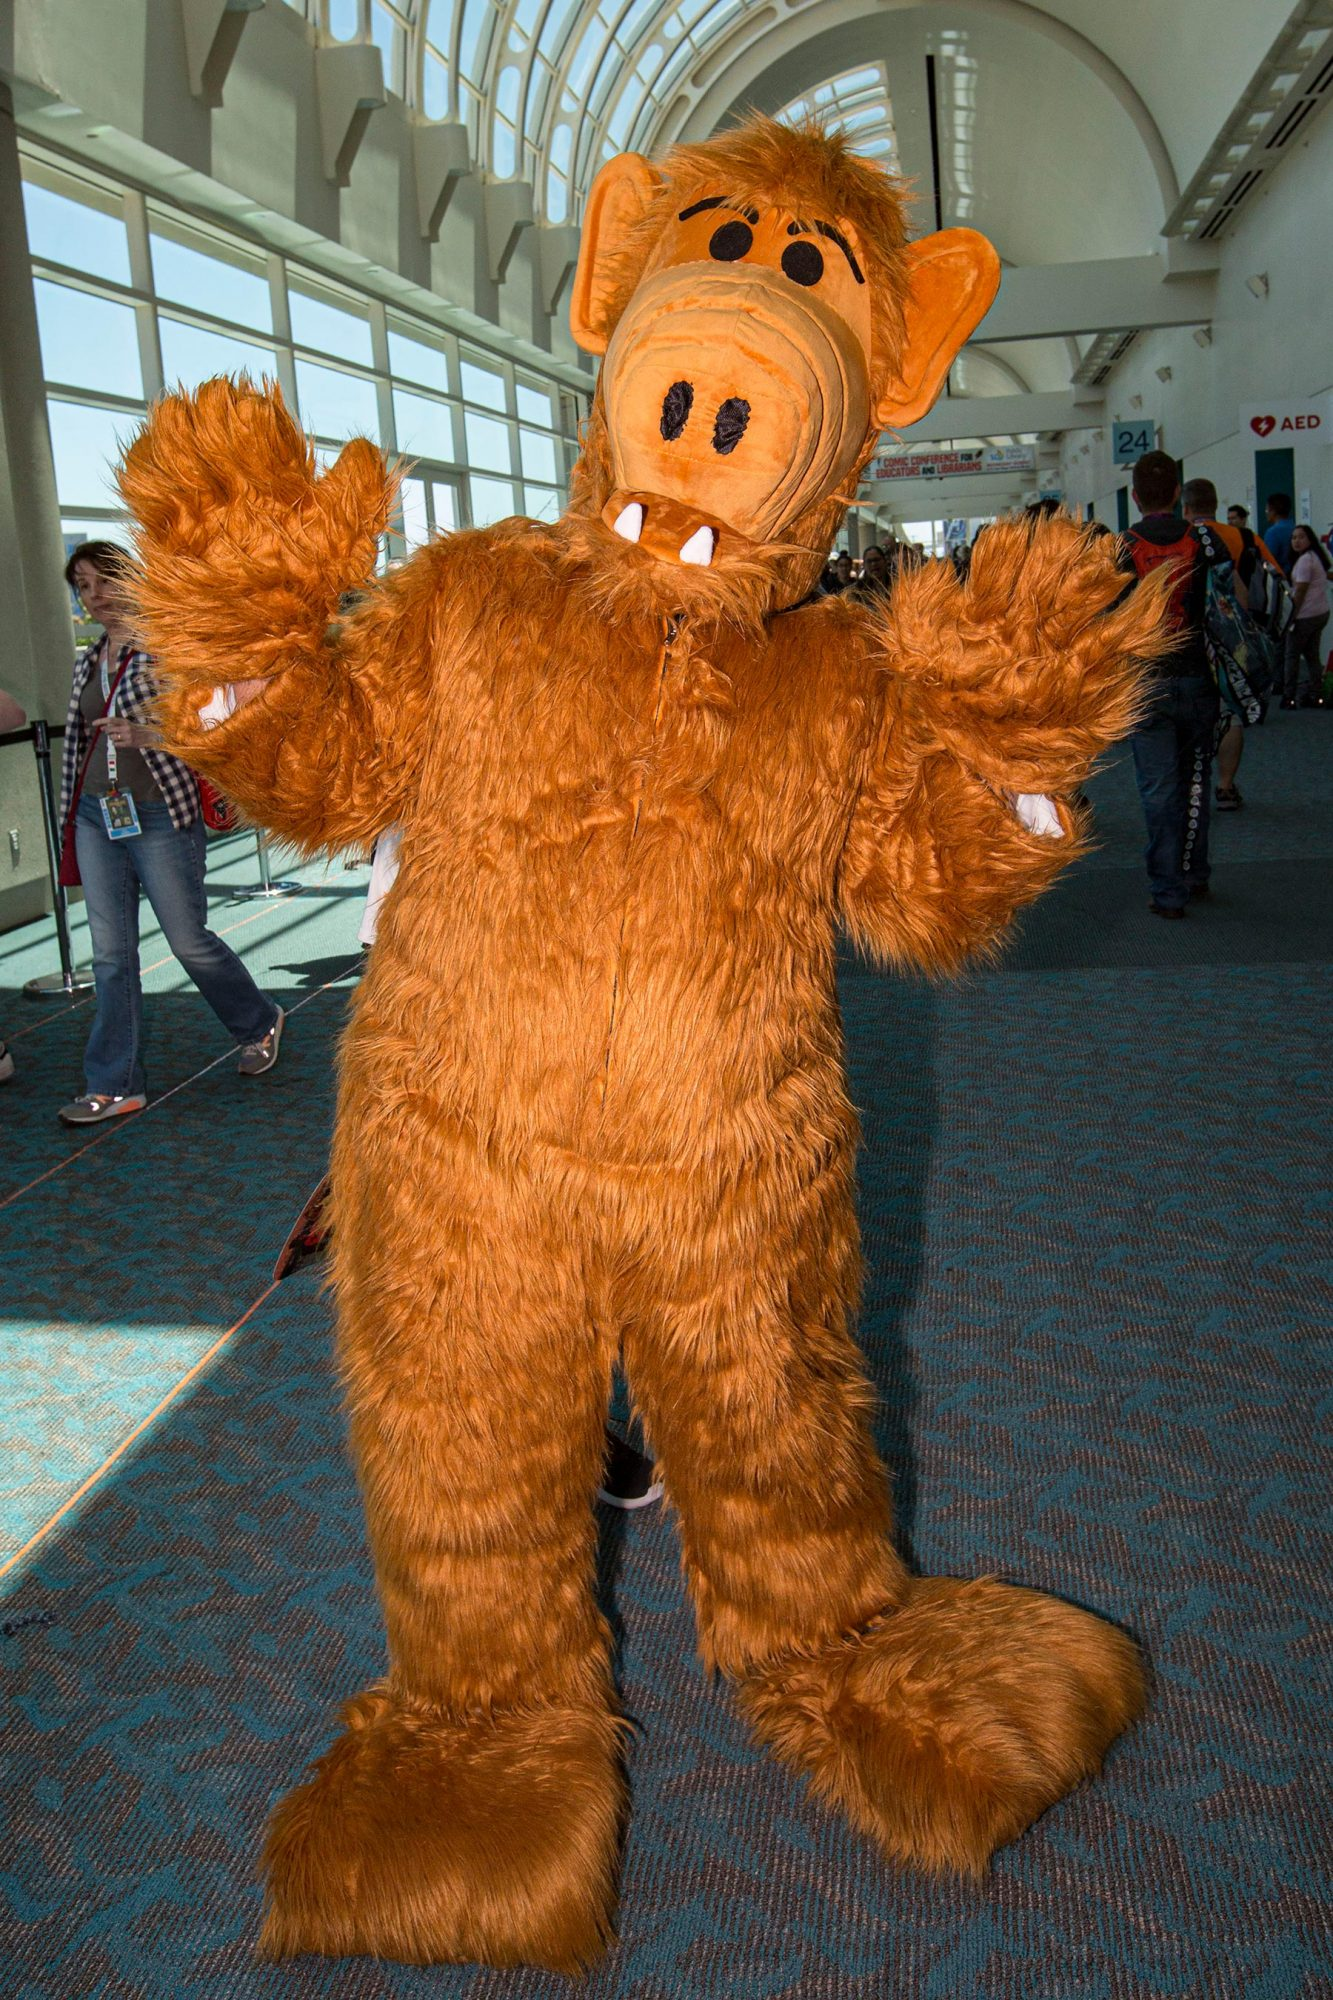 2019 Comic-Con International - General Atmosphere And Cosplay